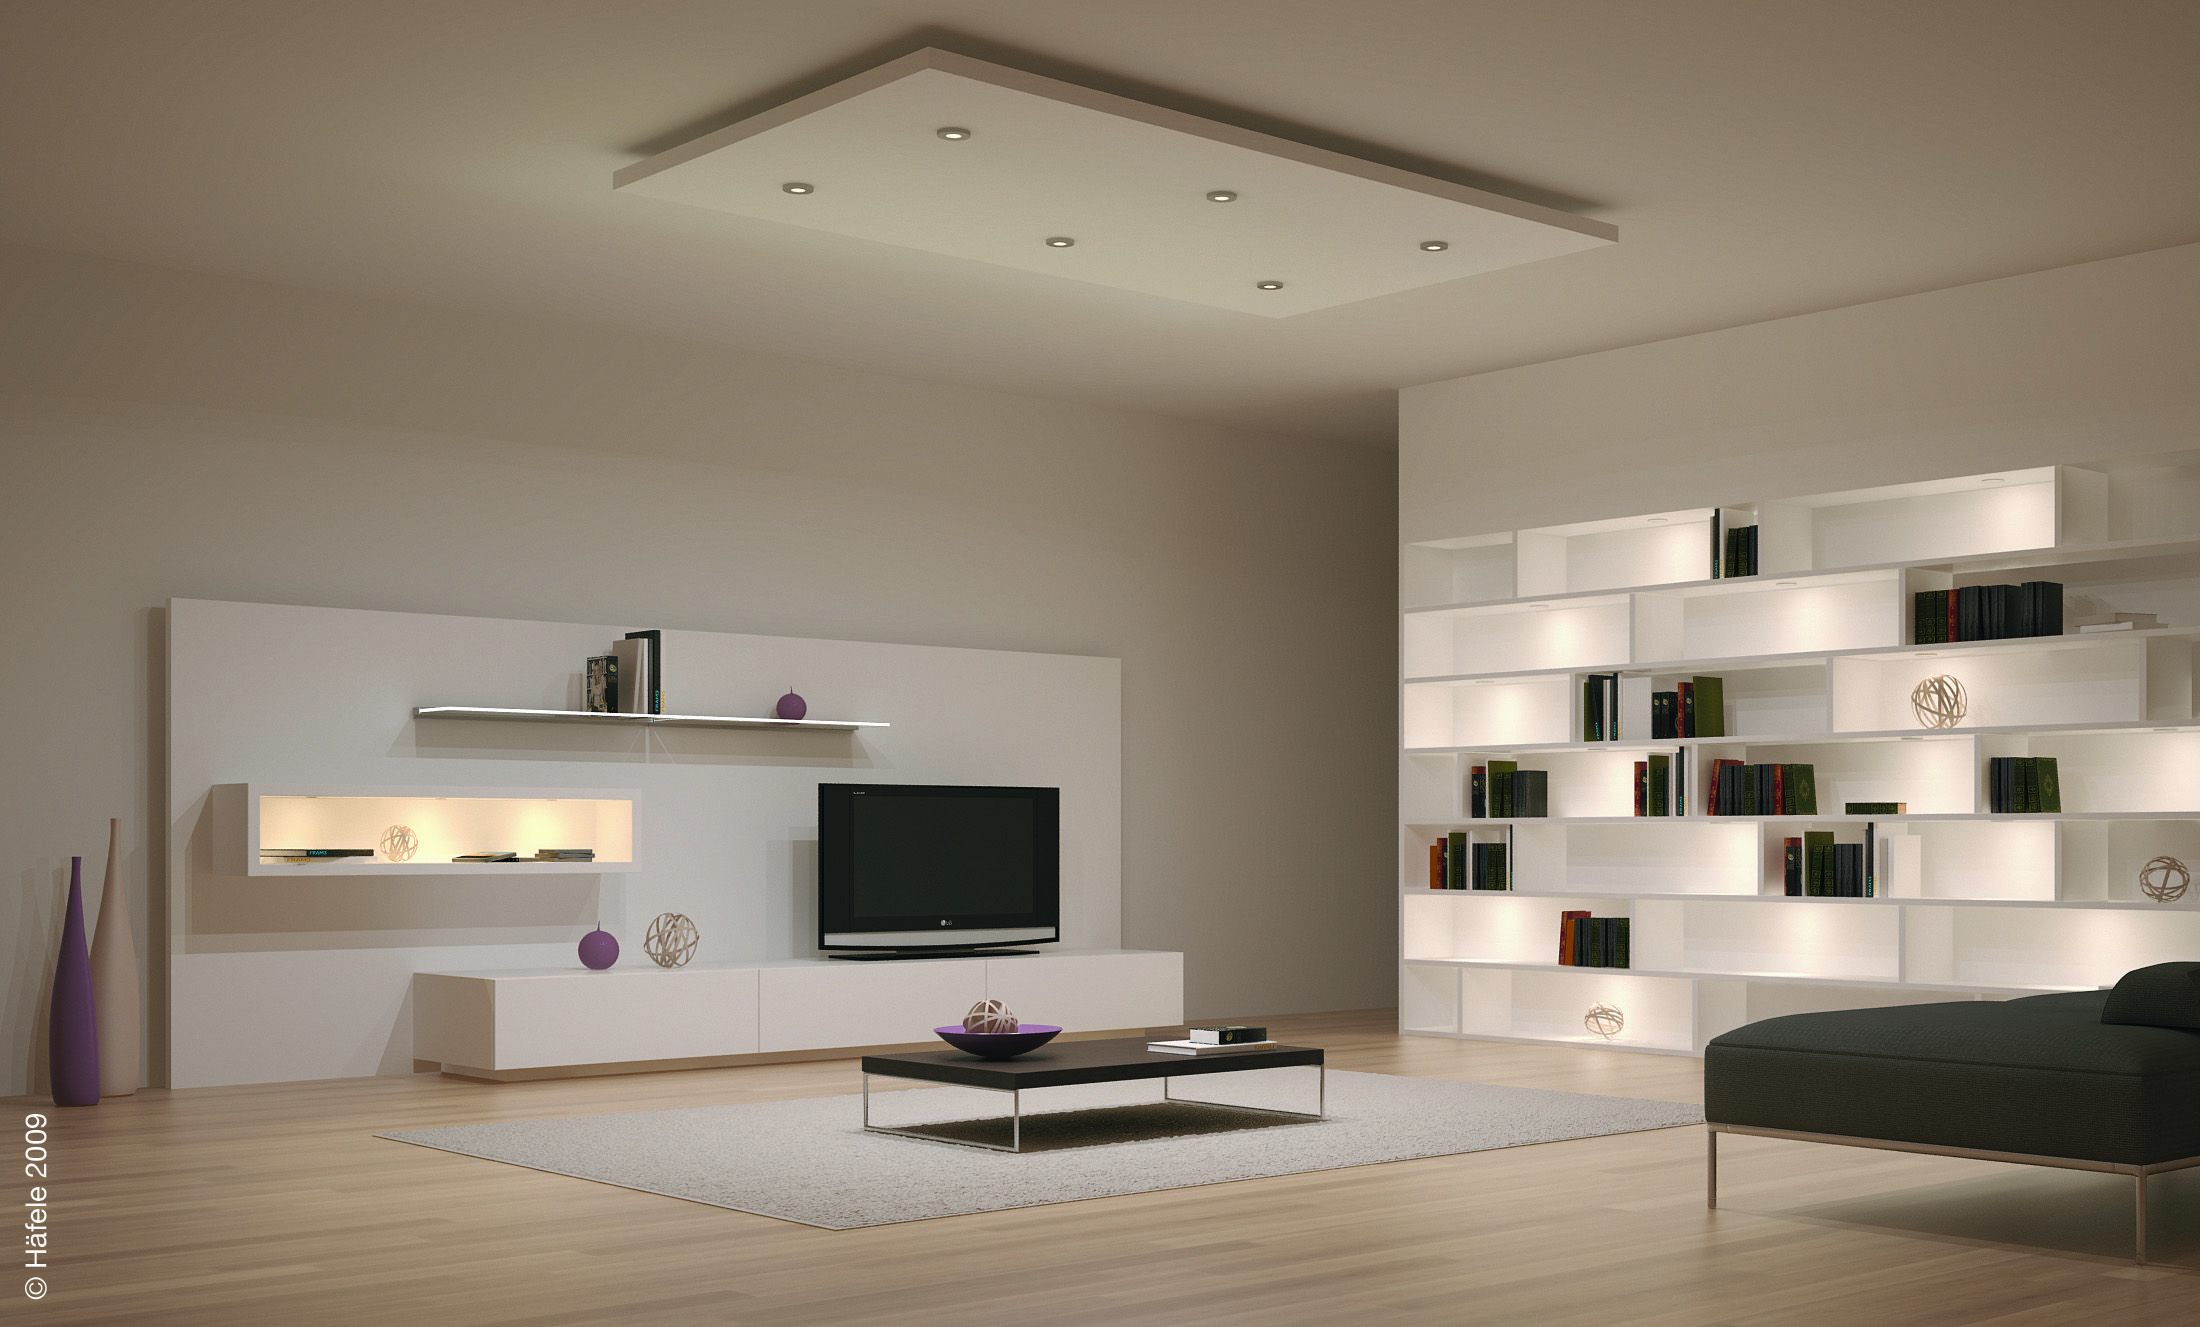 Modern Open Space Living Room Design Lighting System Ideas With Cool LED Ceiling Recessed And Wall Shelves Concealed Lights Creative Eye Catching Home